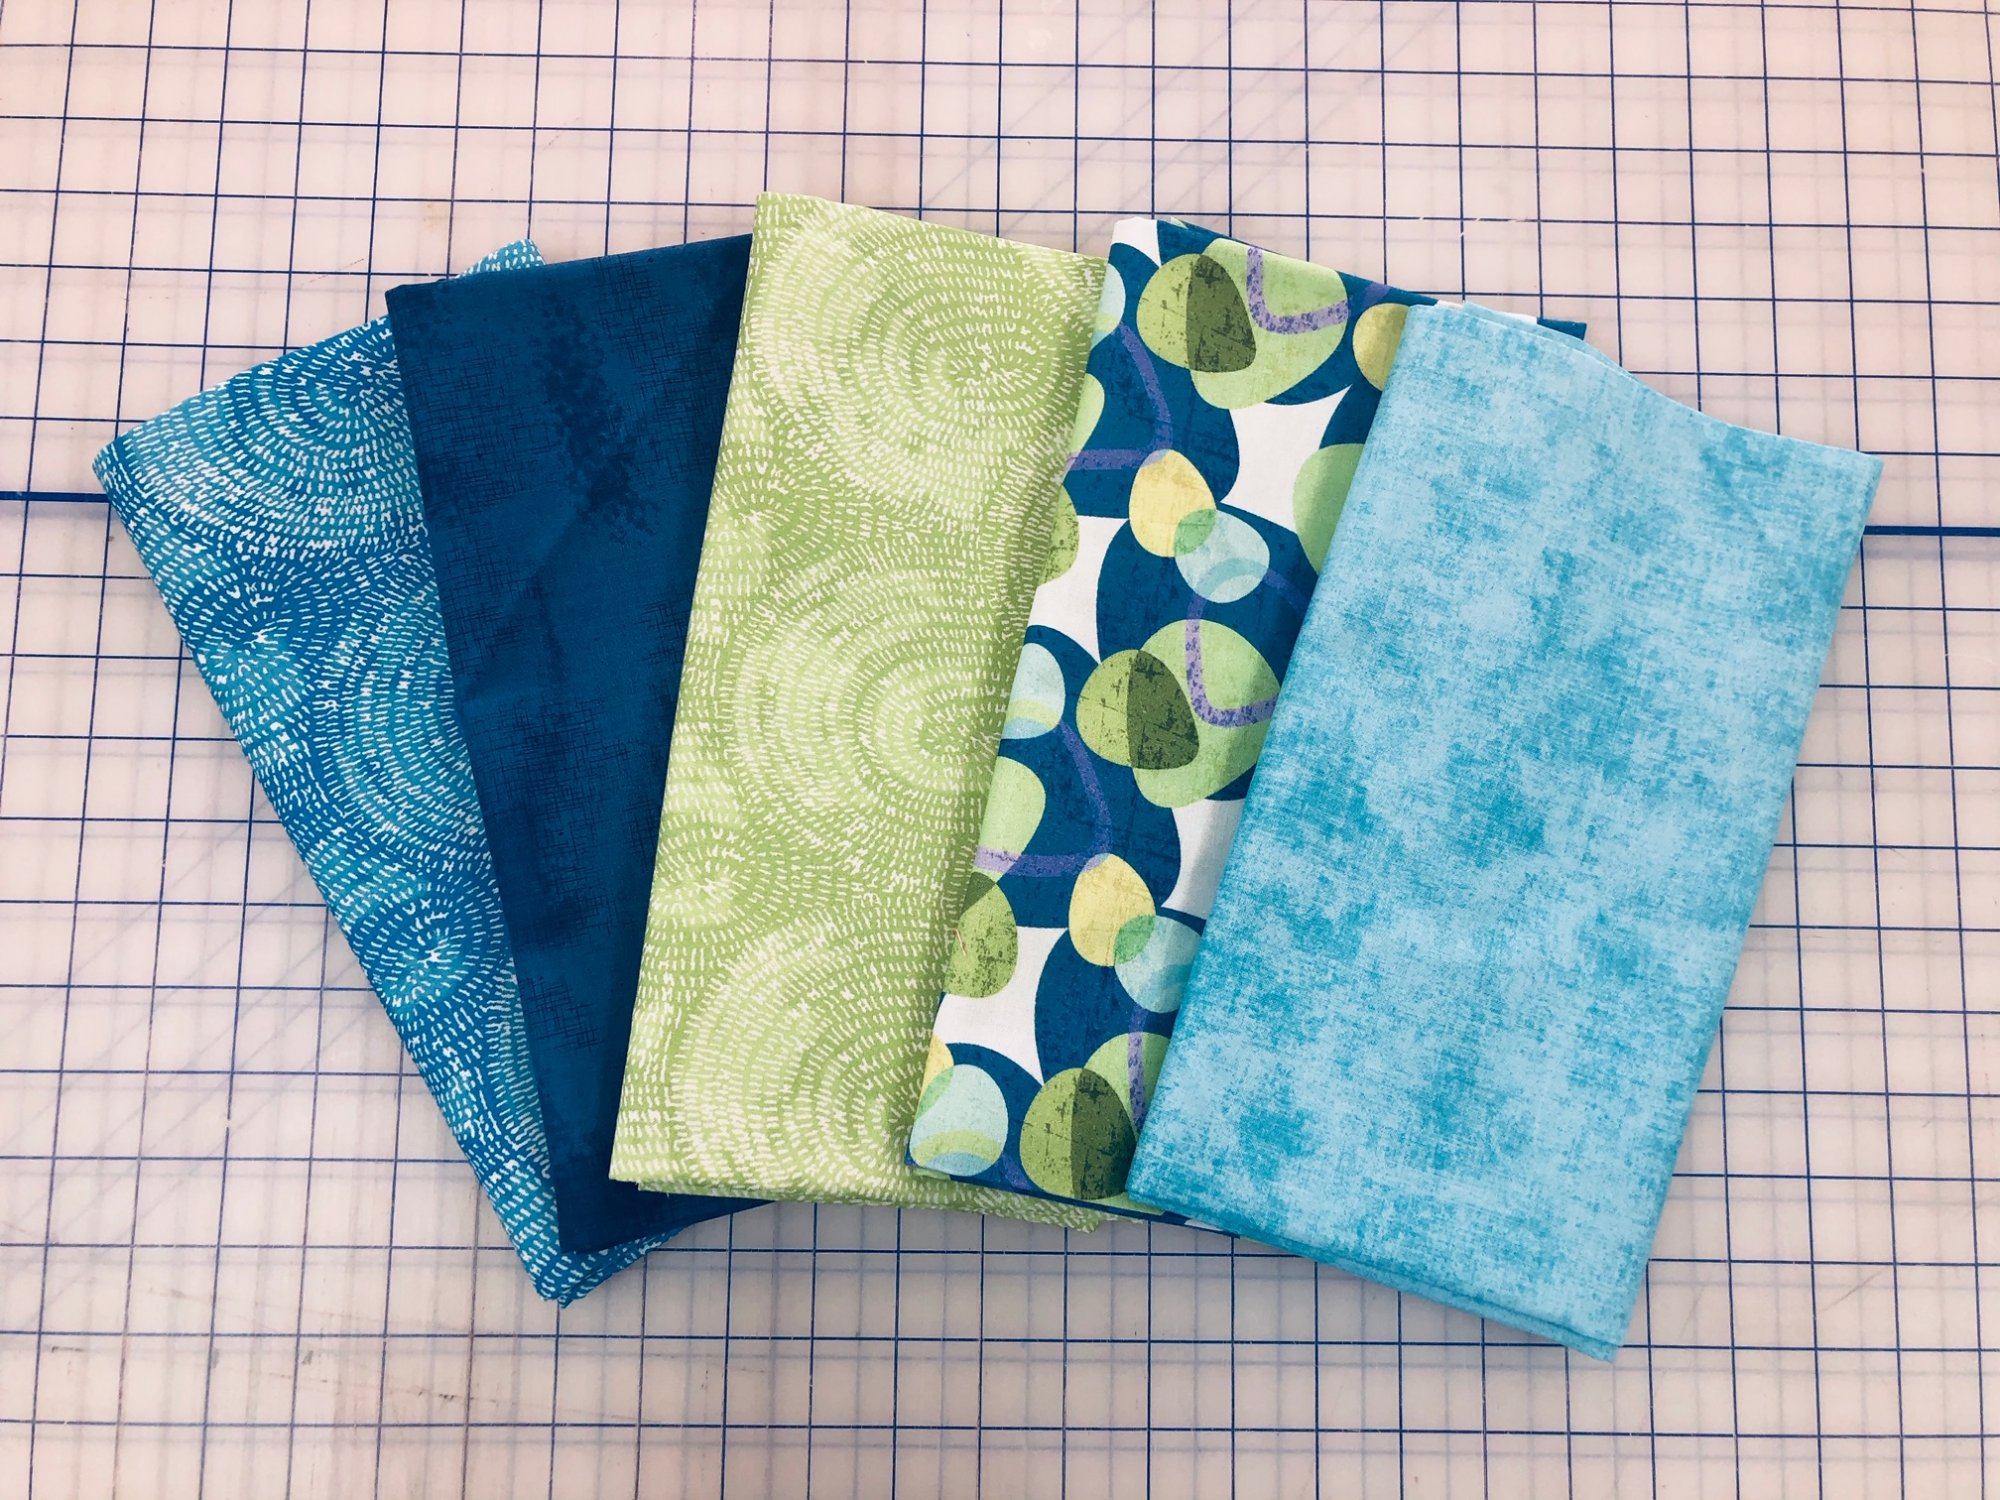 Five 1-Yard Cuts #2 (Blue Shades) - Sold Out